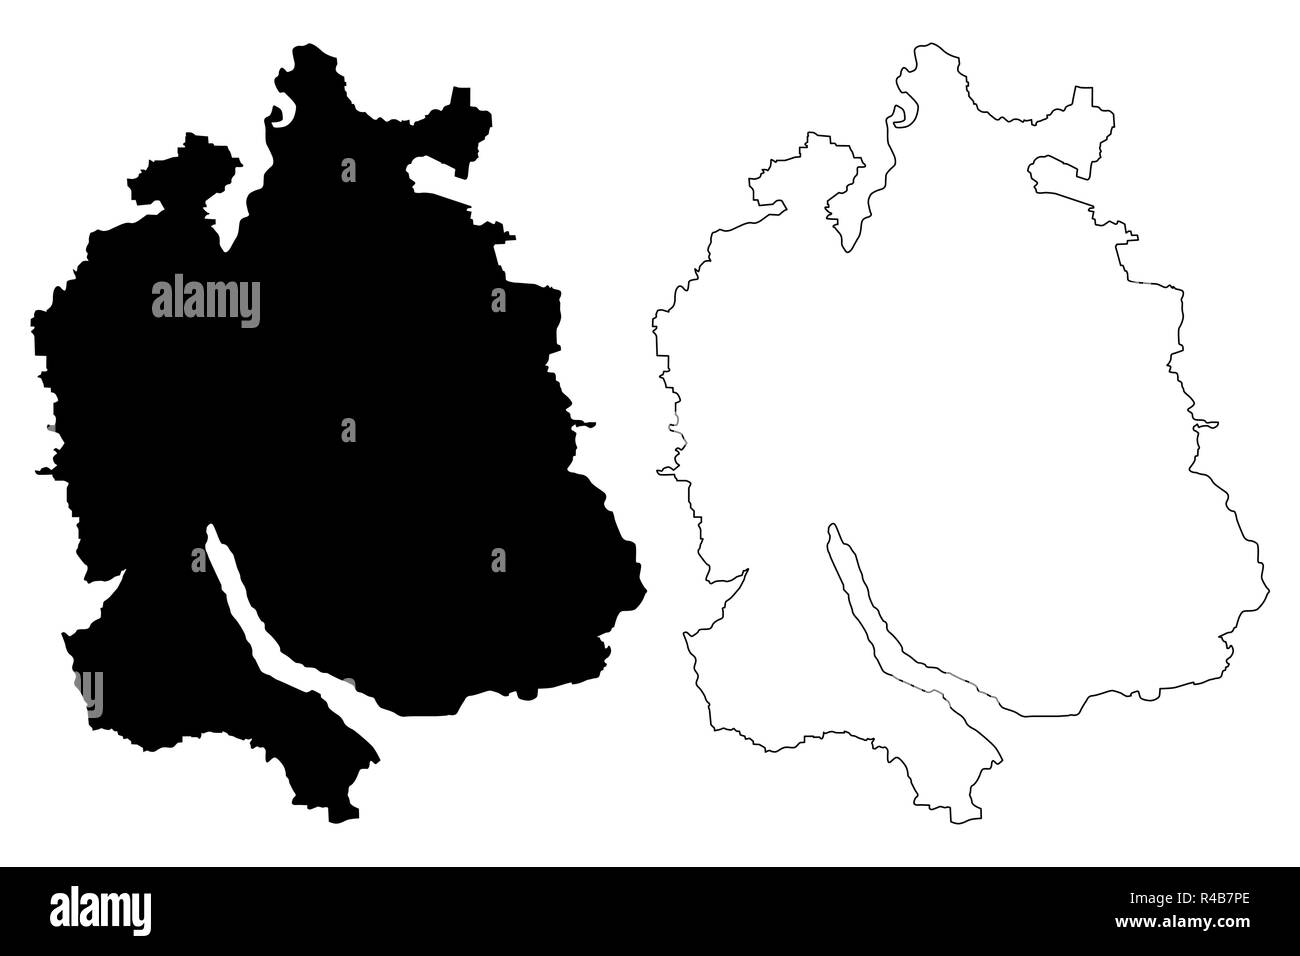 Zurich (Cantons of Switzerland, Swiss cantons, Swiss Confederation) map vector illustration, scribble sketch Canton of Zürich map - Stock Vector